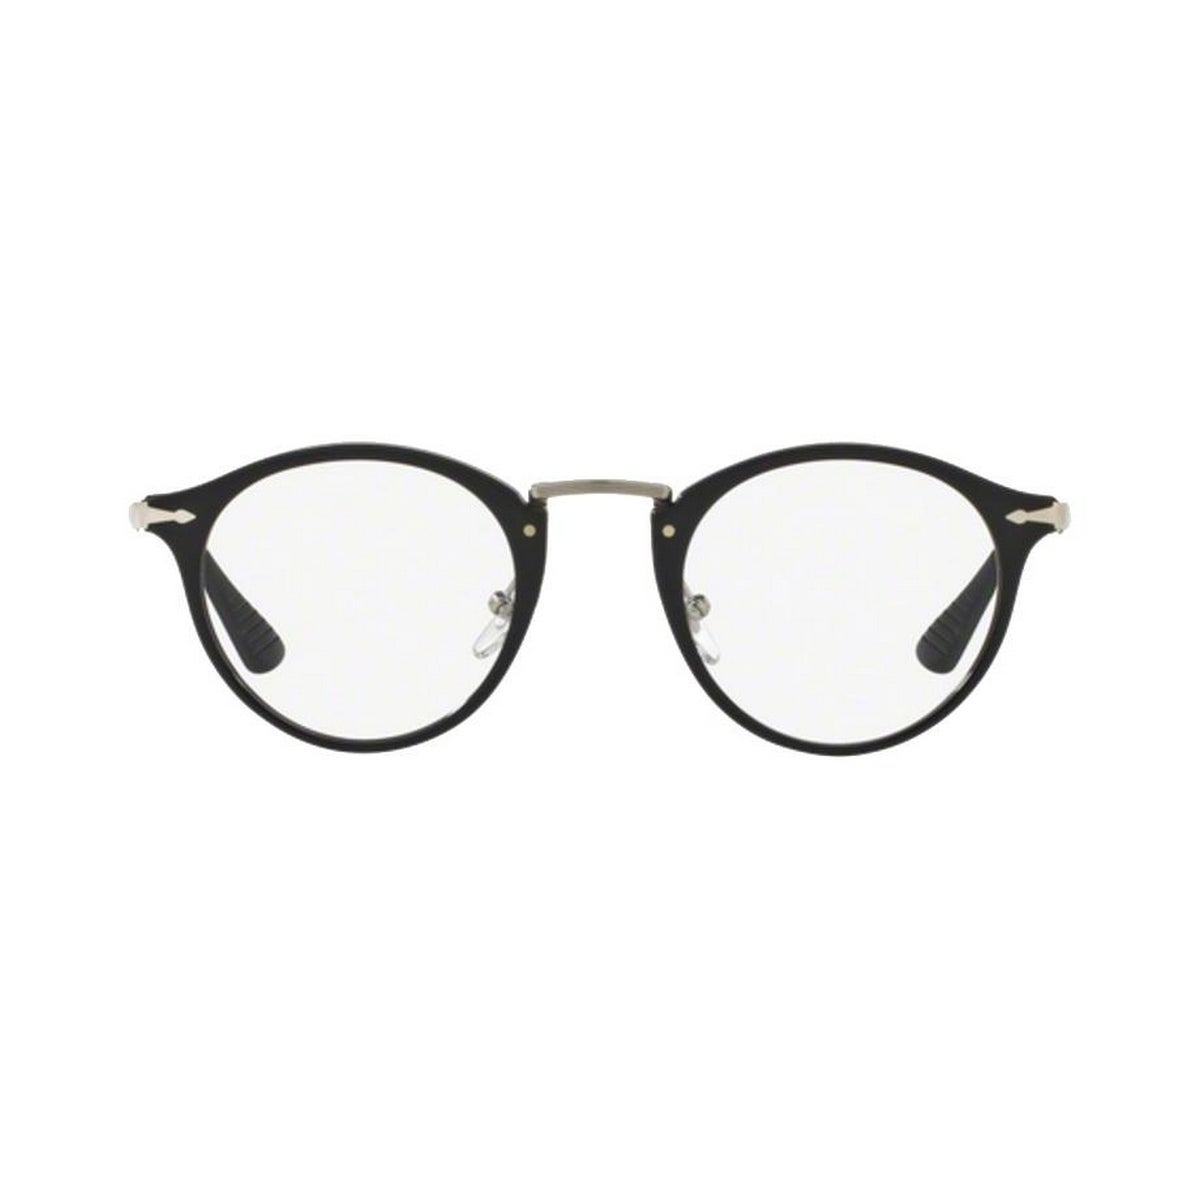 Shop Persol Men s PO3167V 95 49 Round Metal Plastic Black Clear Eyeglasses  - Free Shipping Today - Overstock.com - 14785526 7e4017e8fb4b